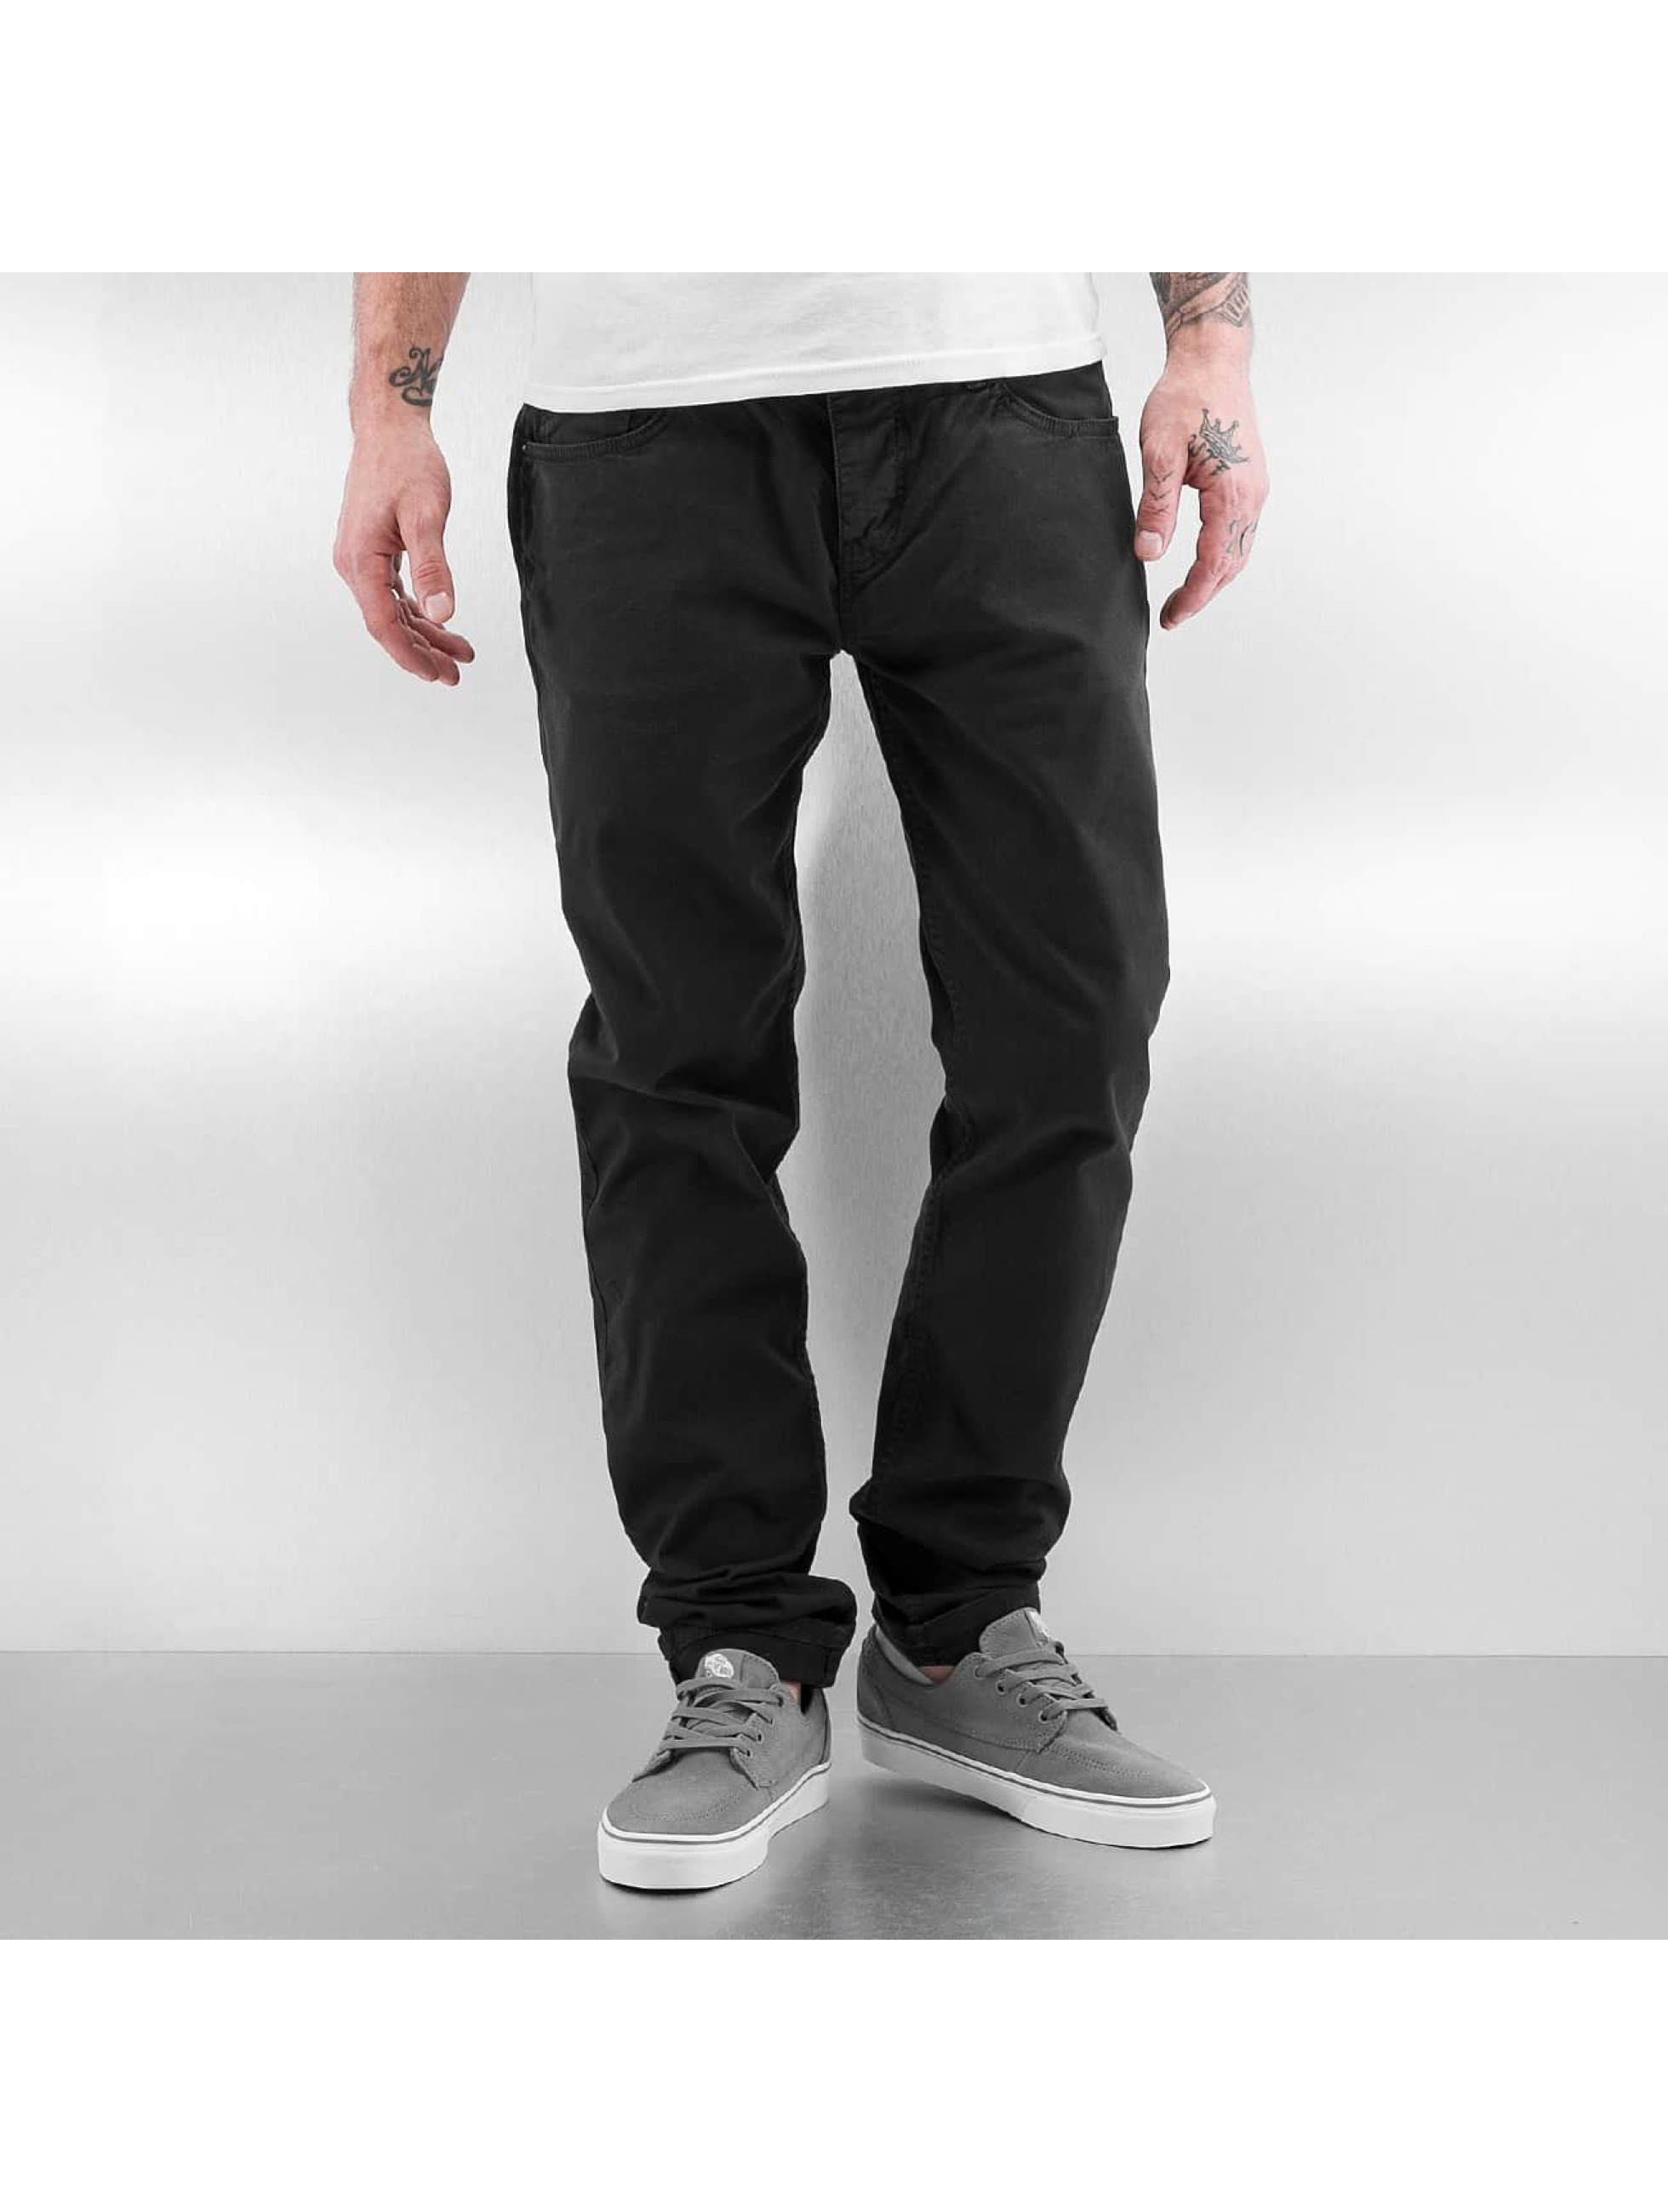 DEF Chino Basic Pants grau